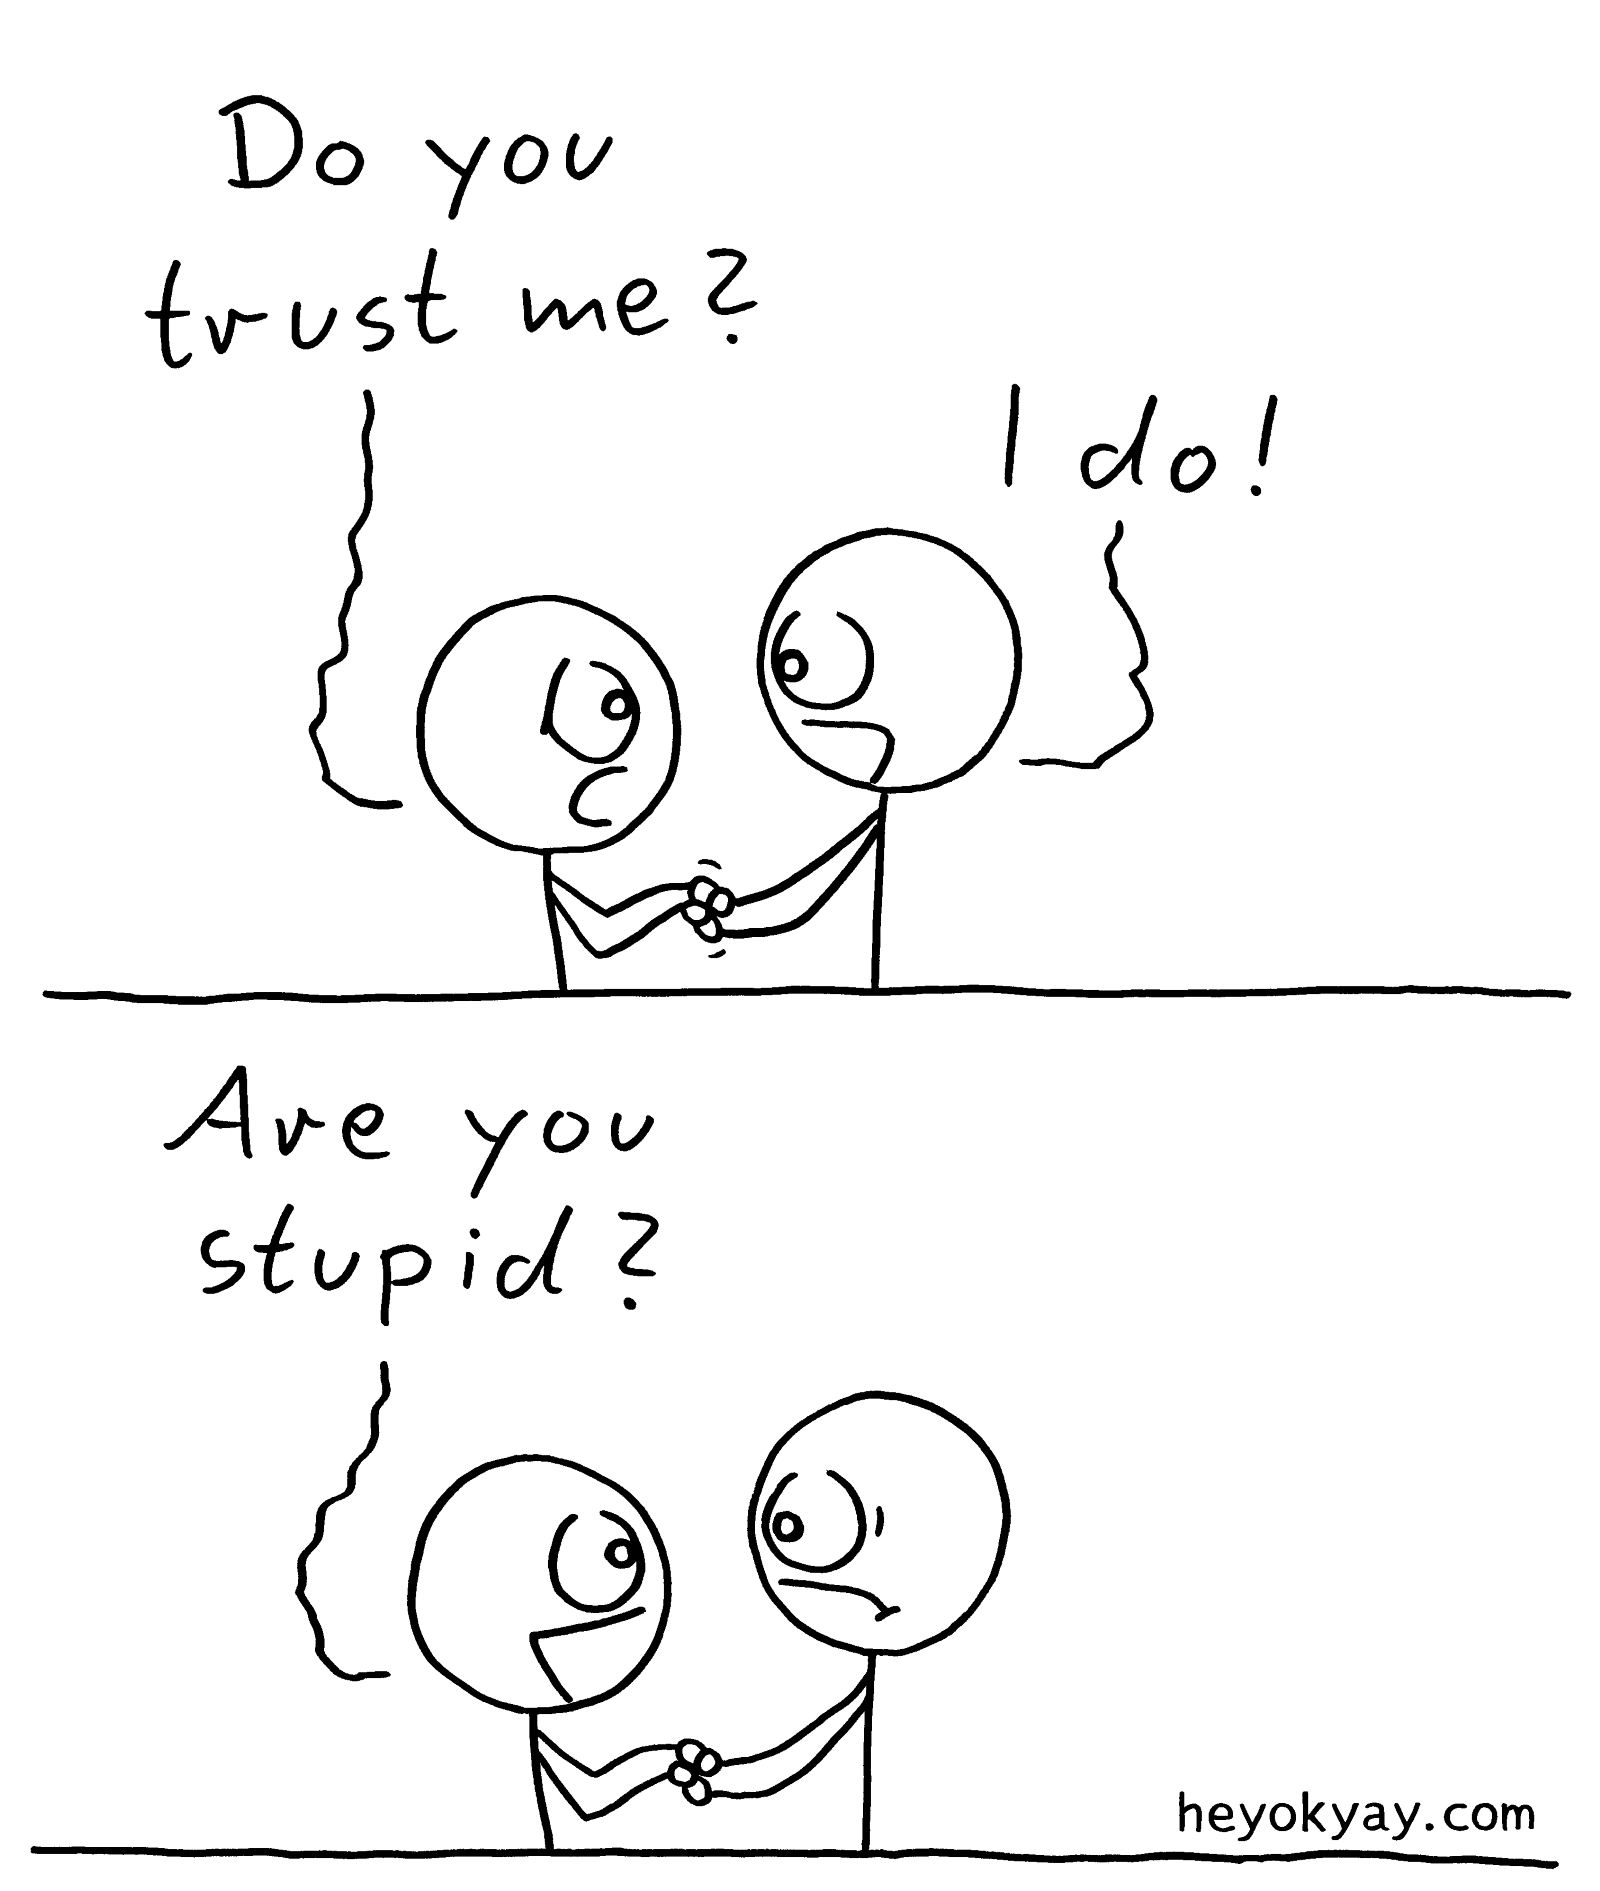 Do you trust me? I do! Are you stupid? Trust heyokyay comic, friendship, loyalty, betrayal